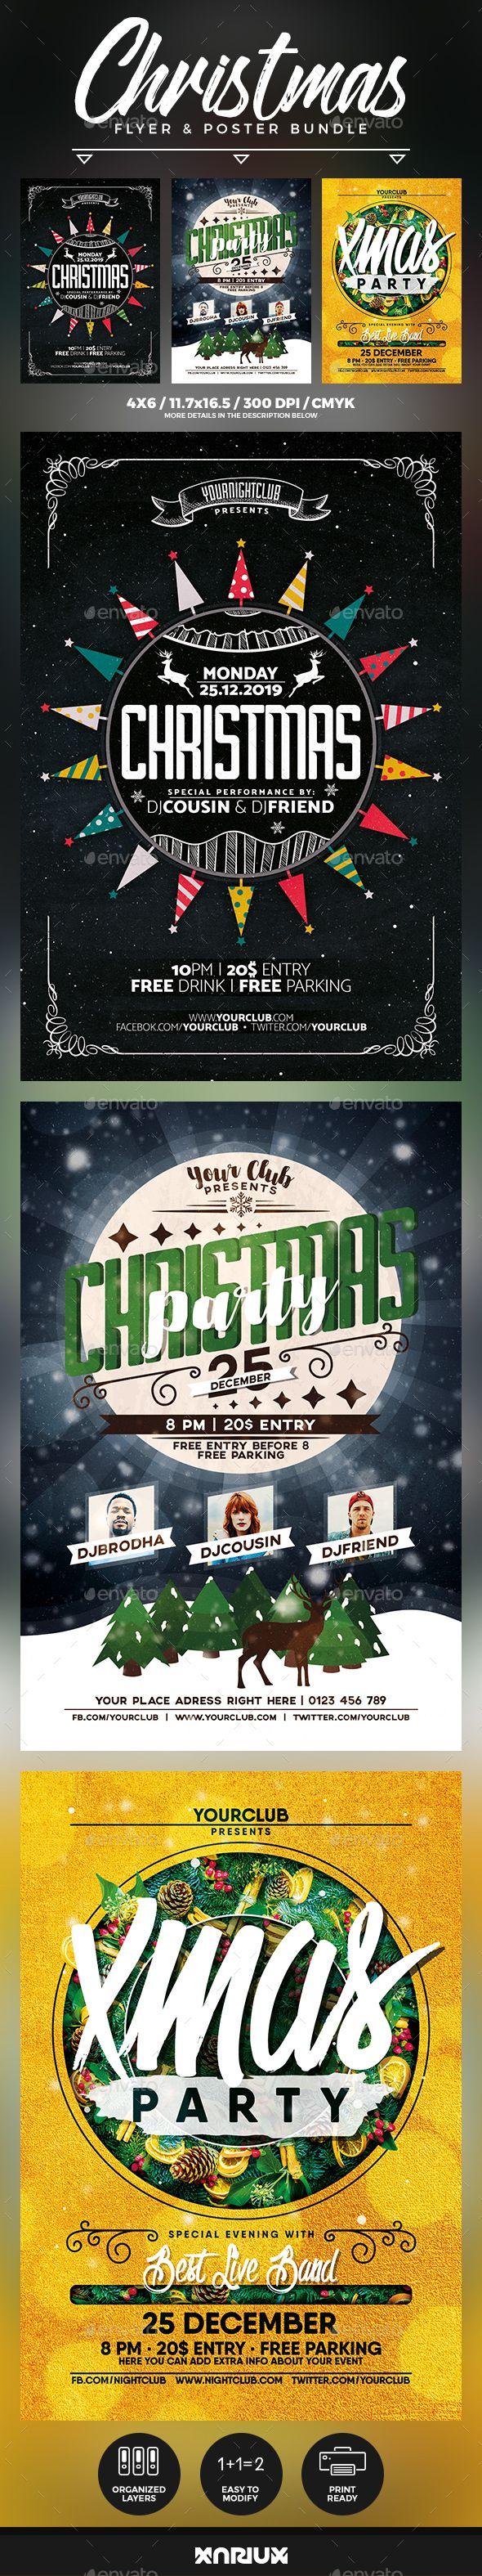 Christmas Party Flyer & Poster Bundle Template